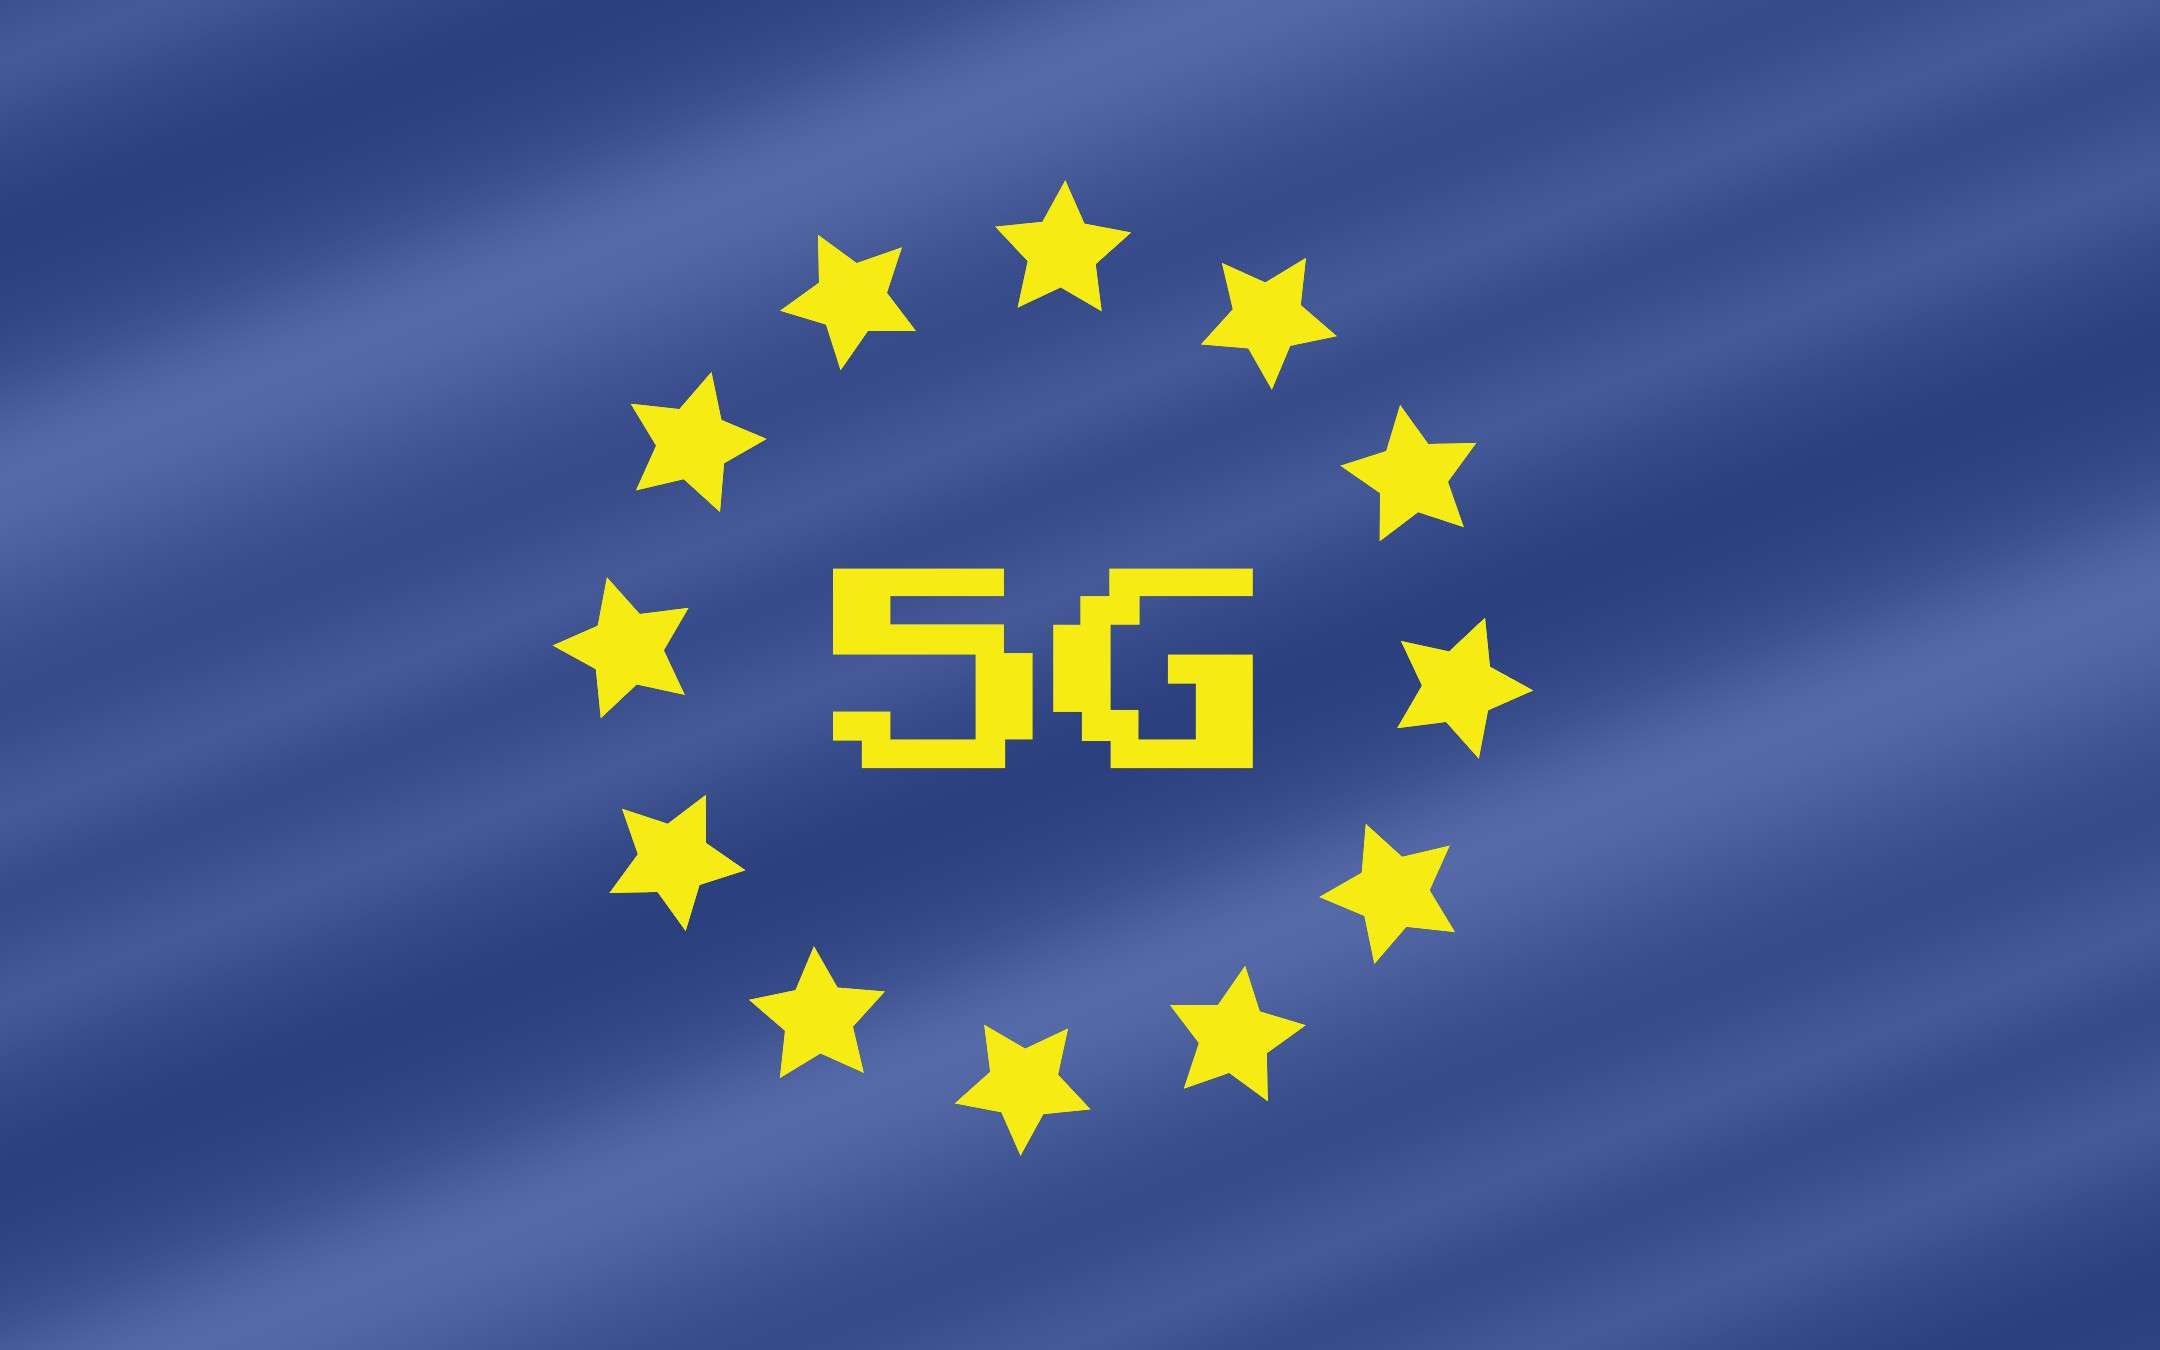 How much is 5G worth for Europe? Over 200 billion